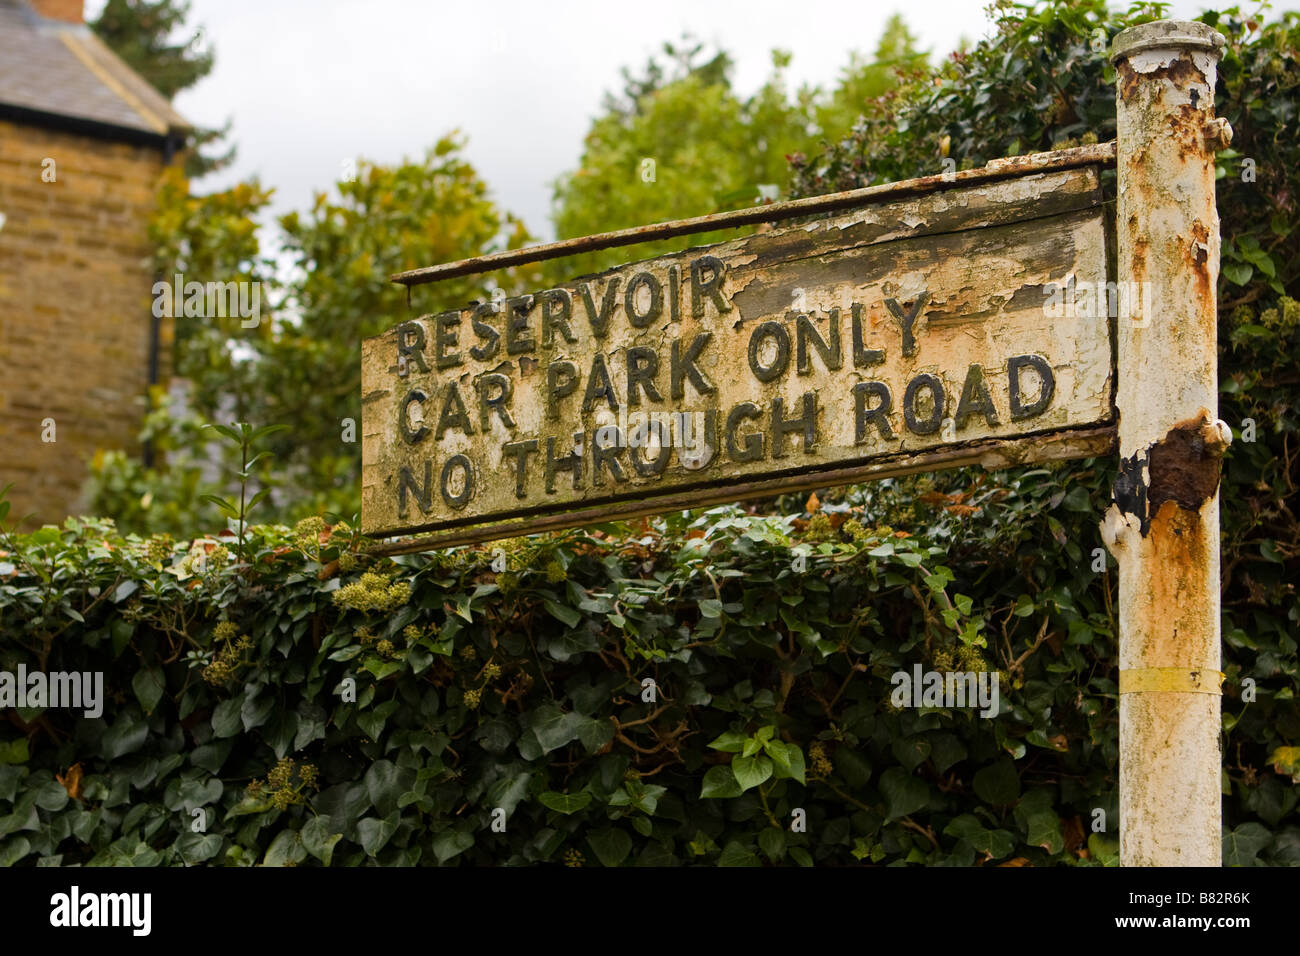 Decrepit road sign to Pitsford Reservoir, Northampton - Stock Image